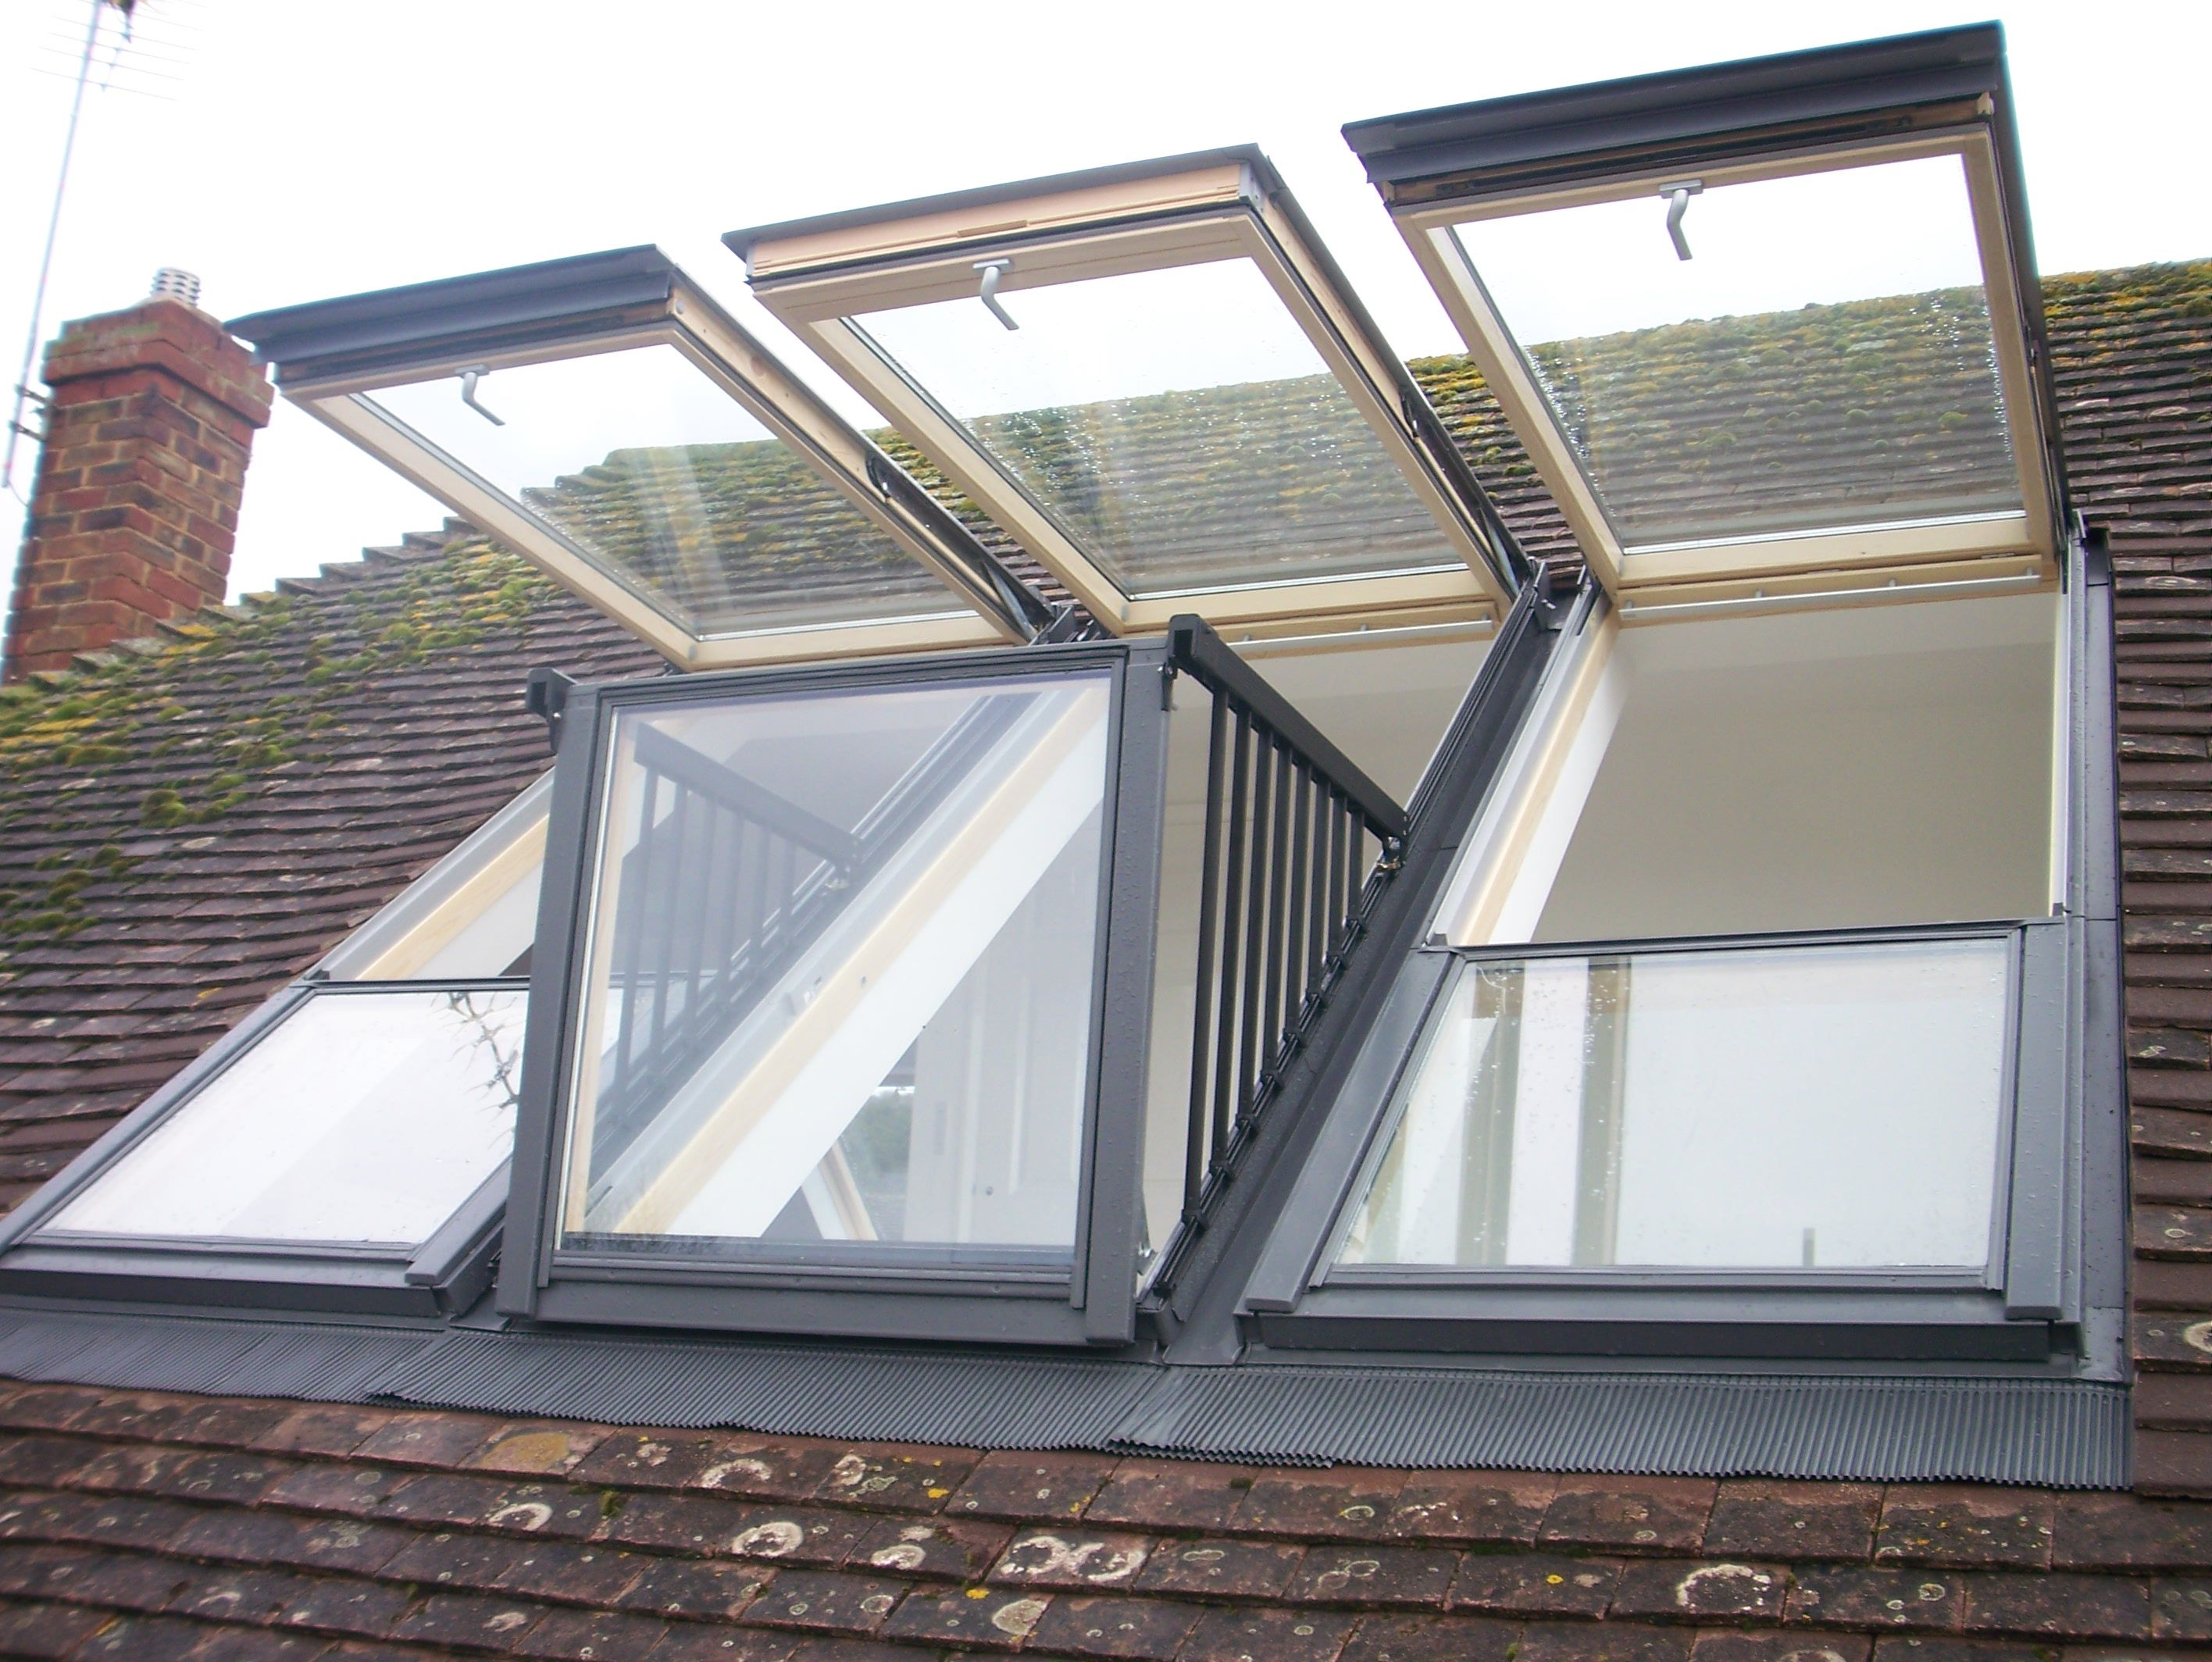 velux cabrio roof window balcony - it'll give your room the wow